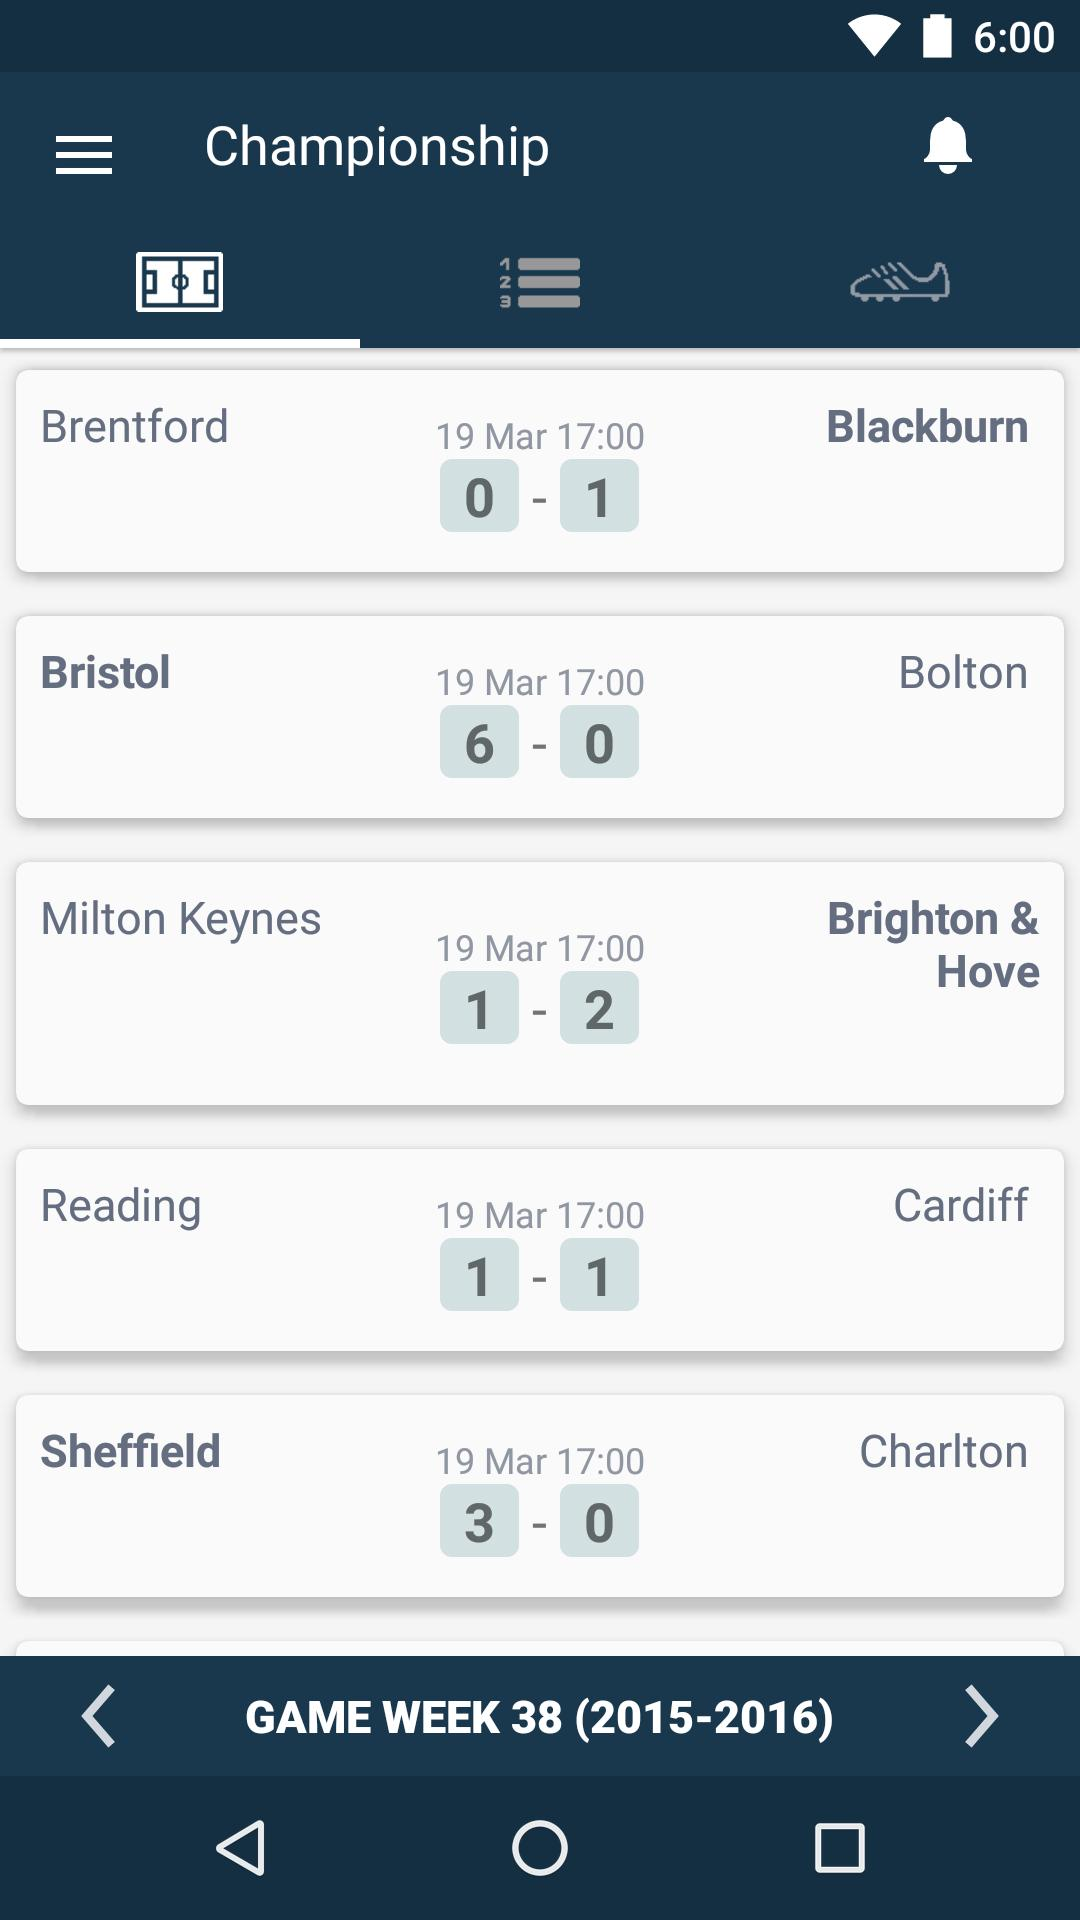 England Football League - EFL Championship for Android - APK